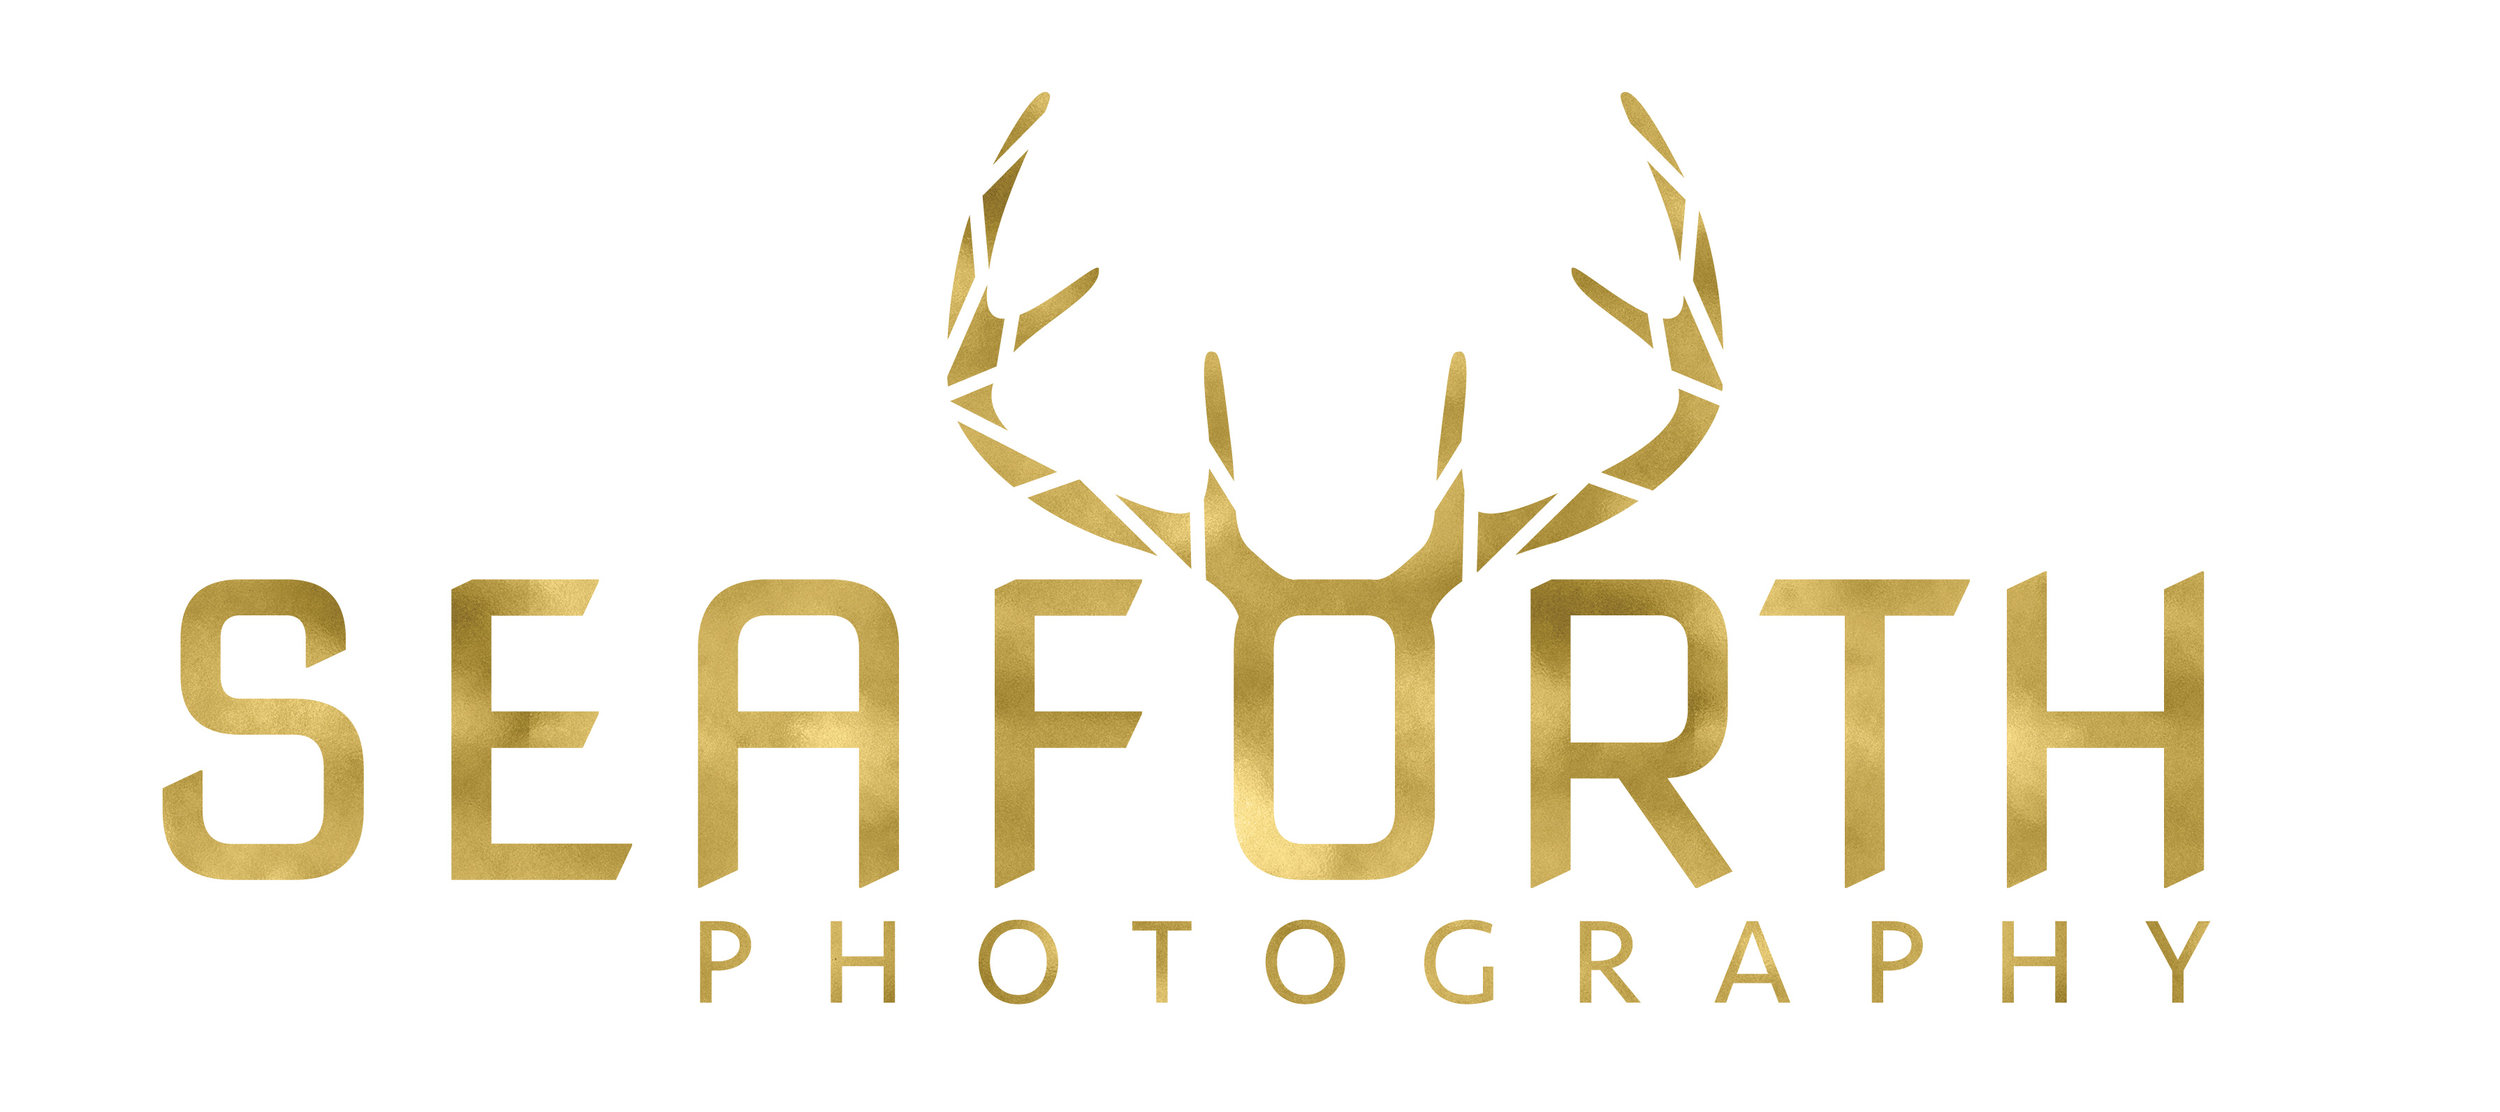 seaforth_logo_gold2.jpg